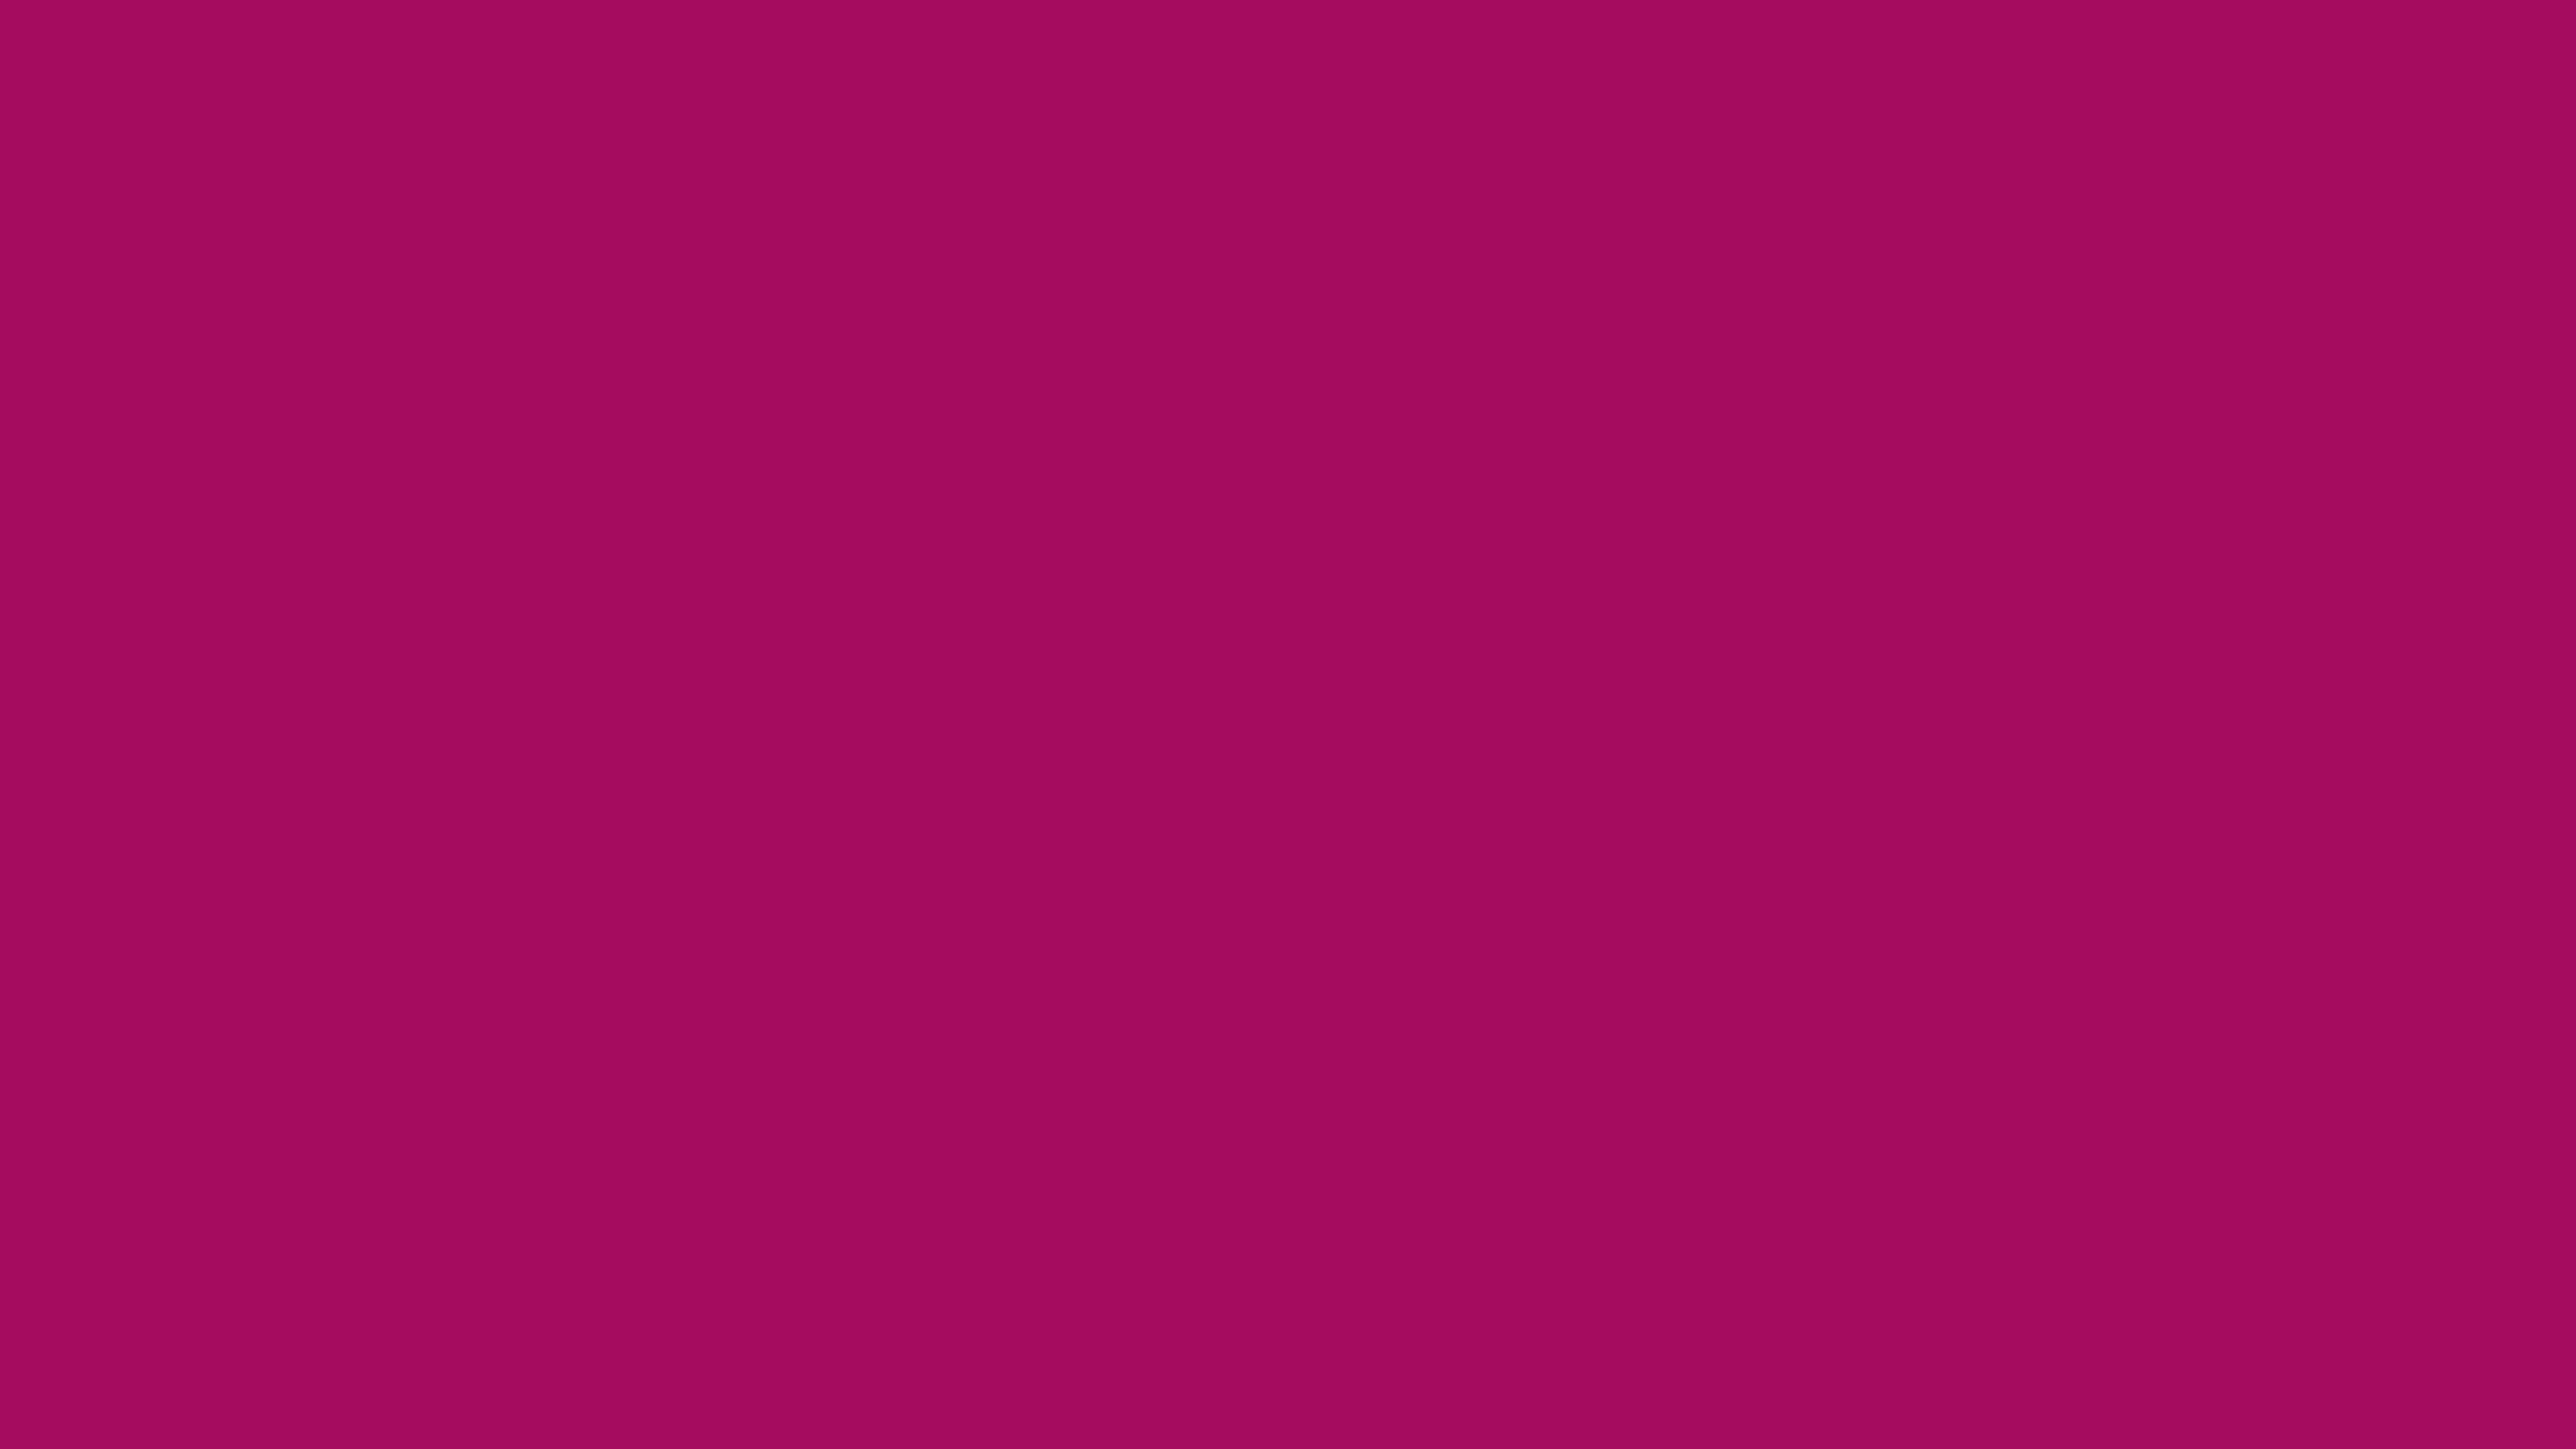 3840x2160 Jazzberry Jam Solid Color Background